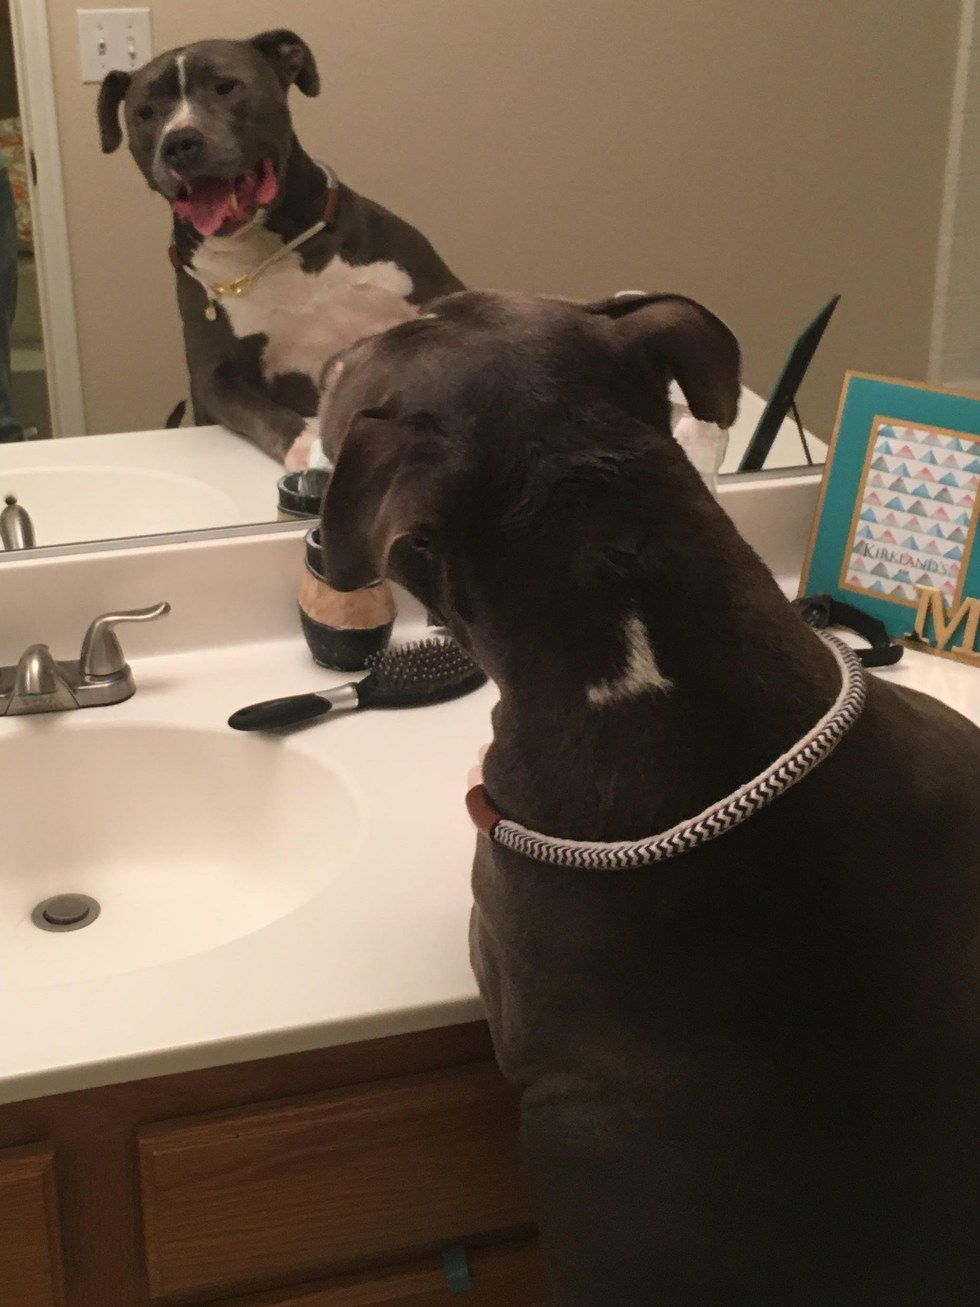 Blue King checking himself out in the mirror